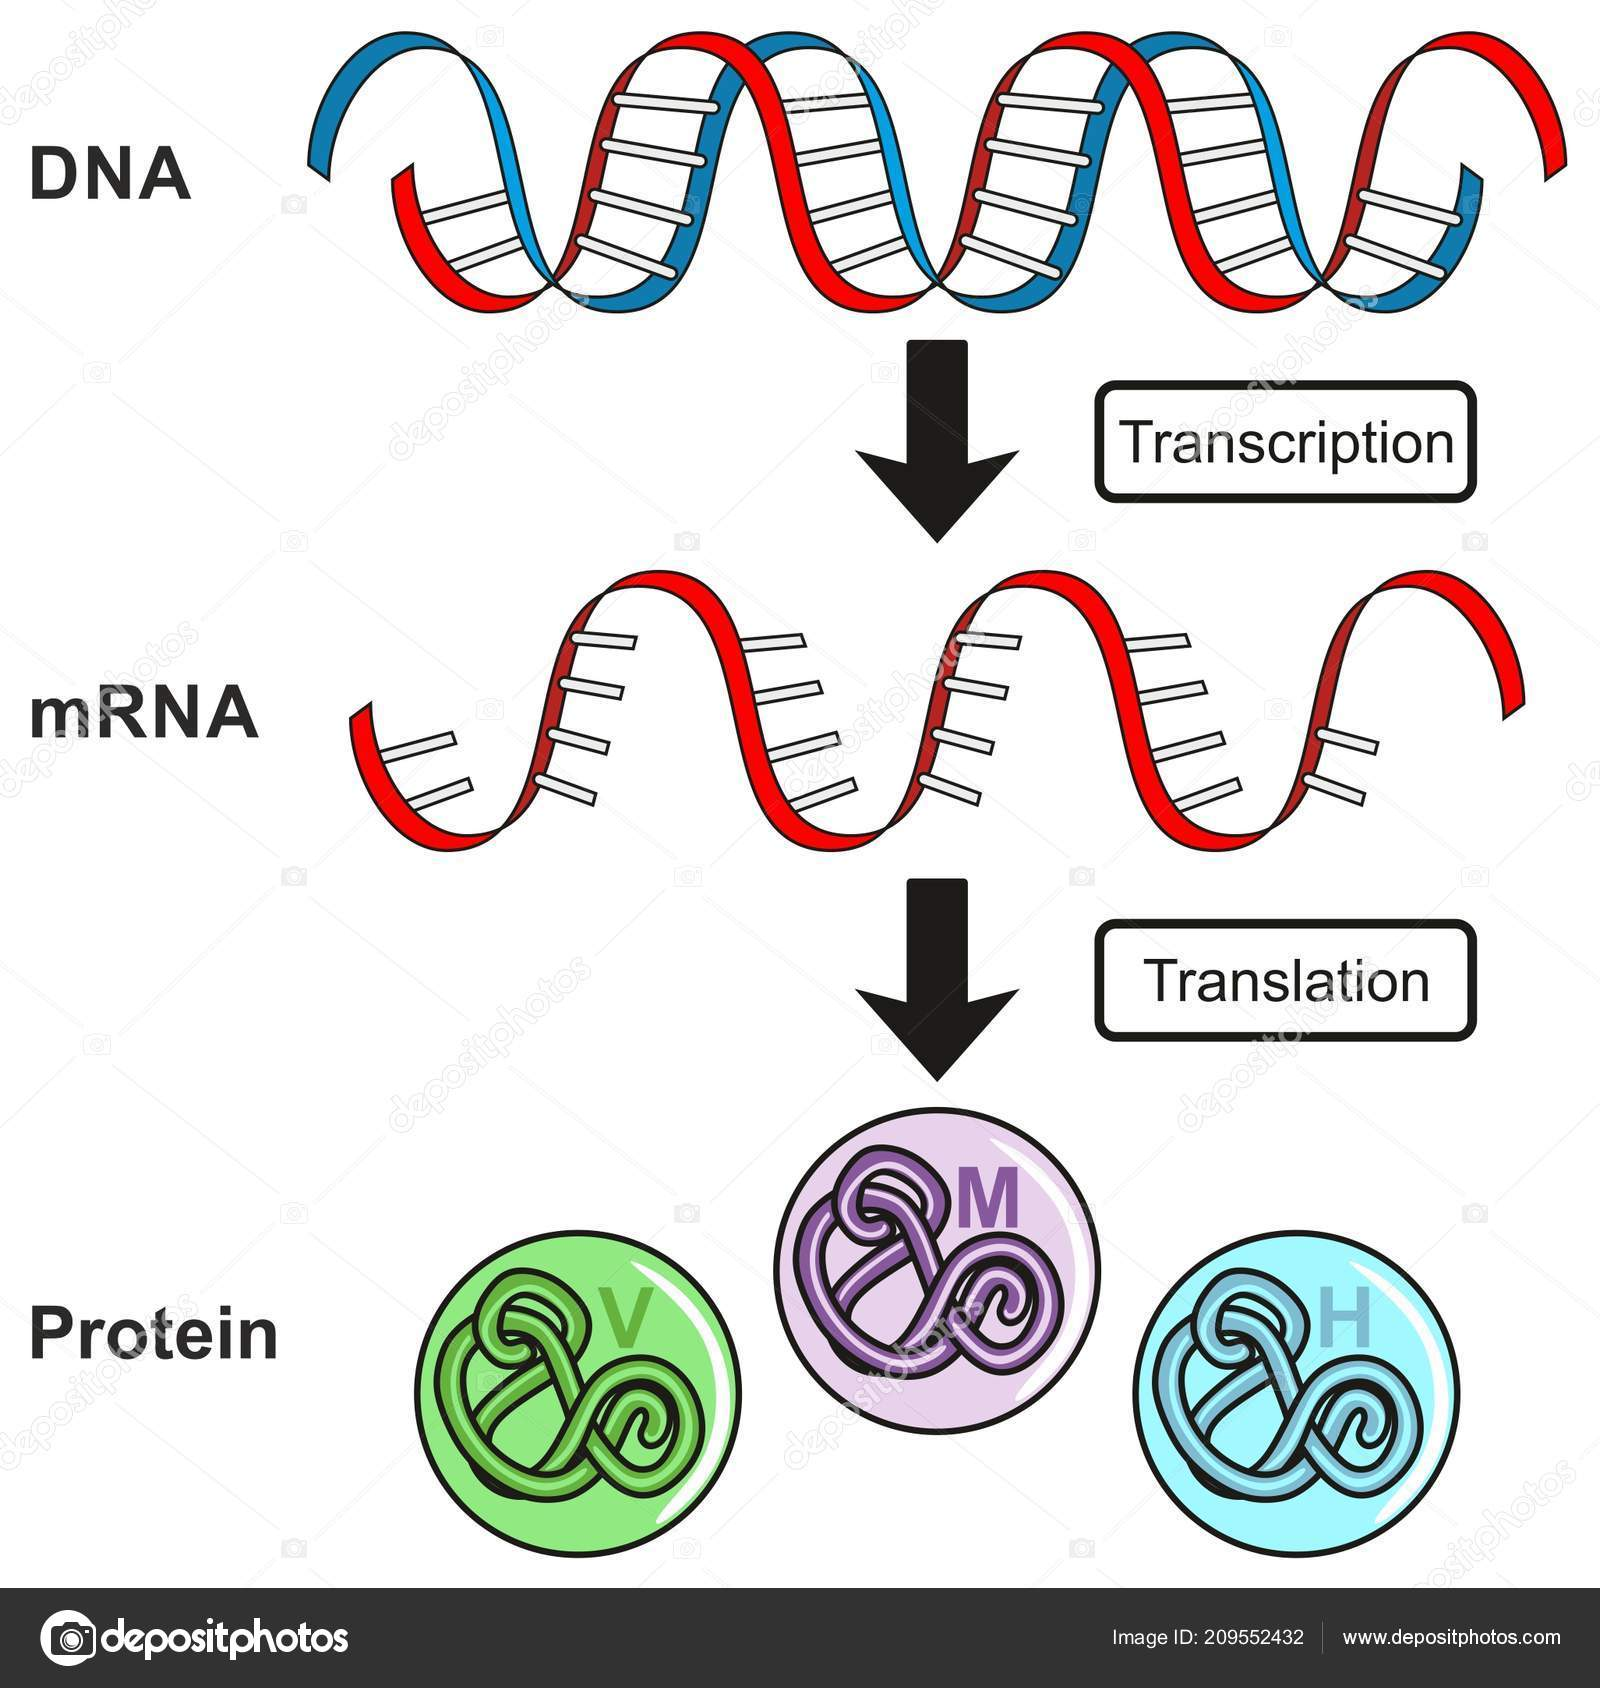 hight resolution of central dogma gene expression infographic diagram showing process transcription translation stock vector